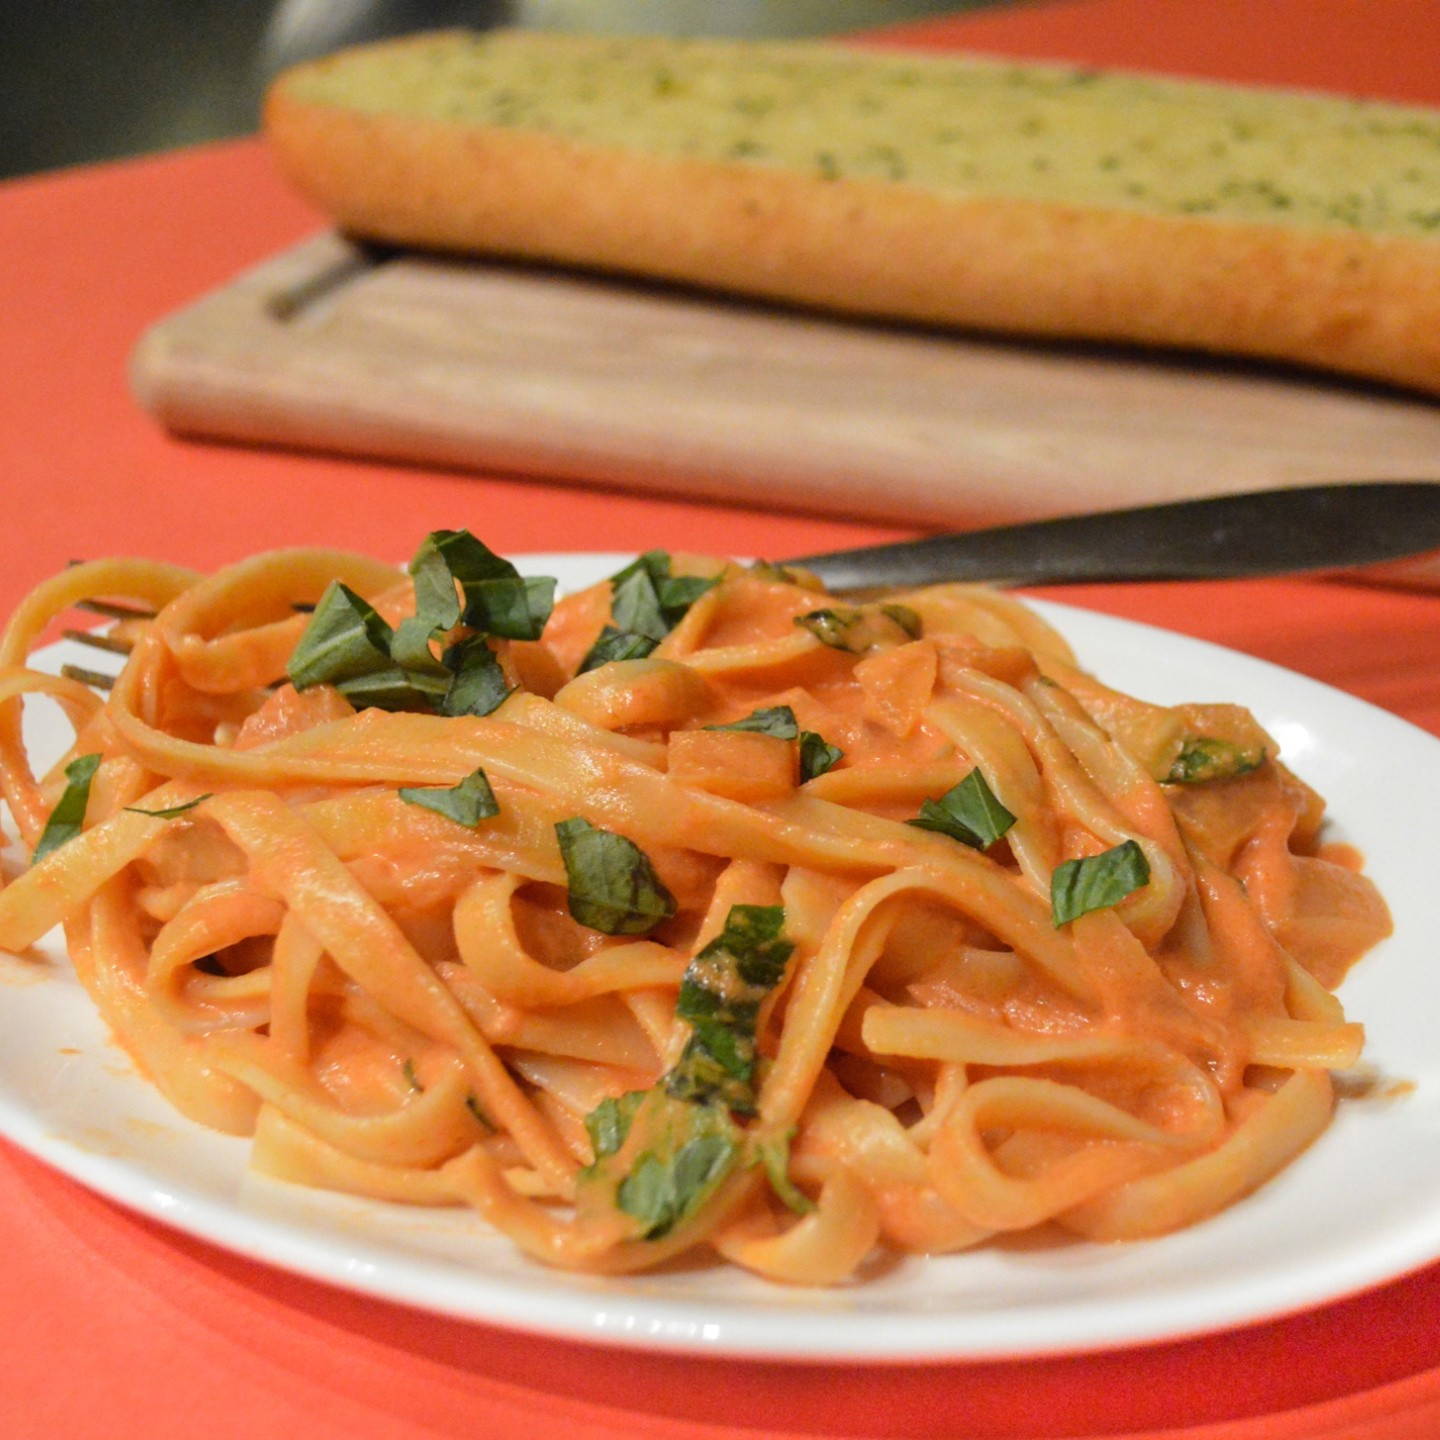 Pasta with Creamy Tomato Sauce - The Lemon Press